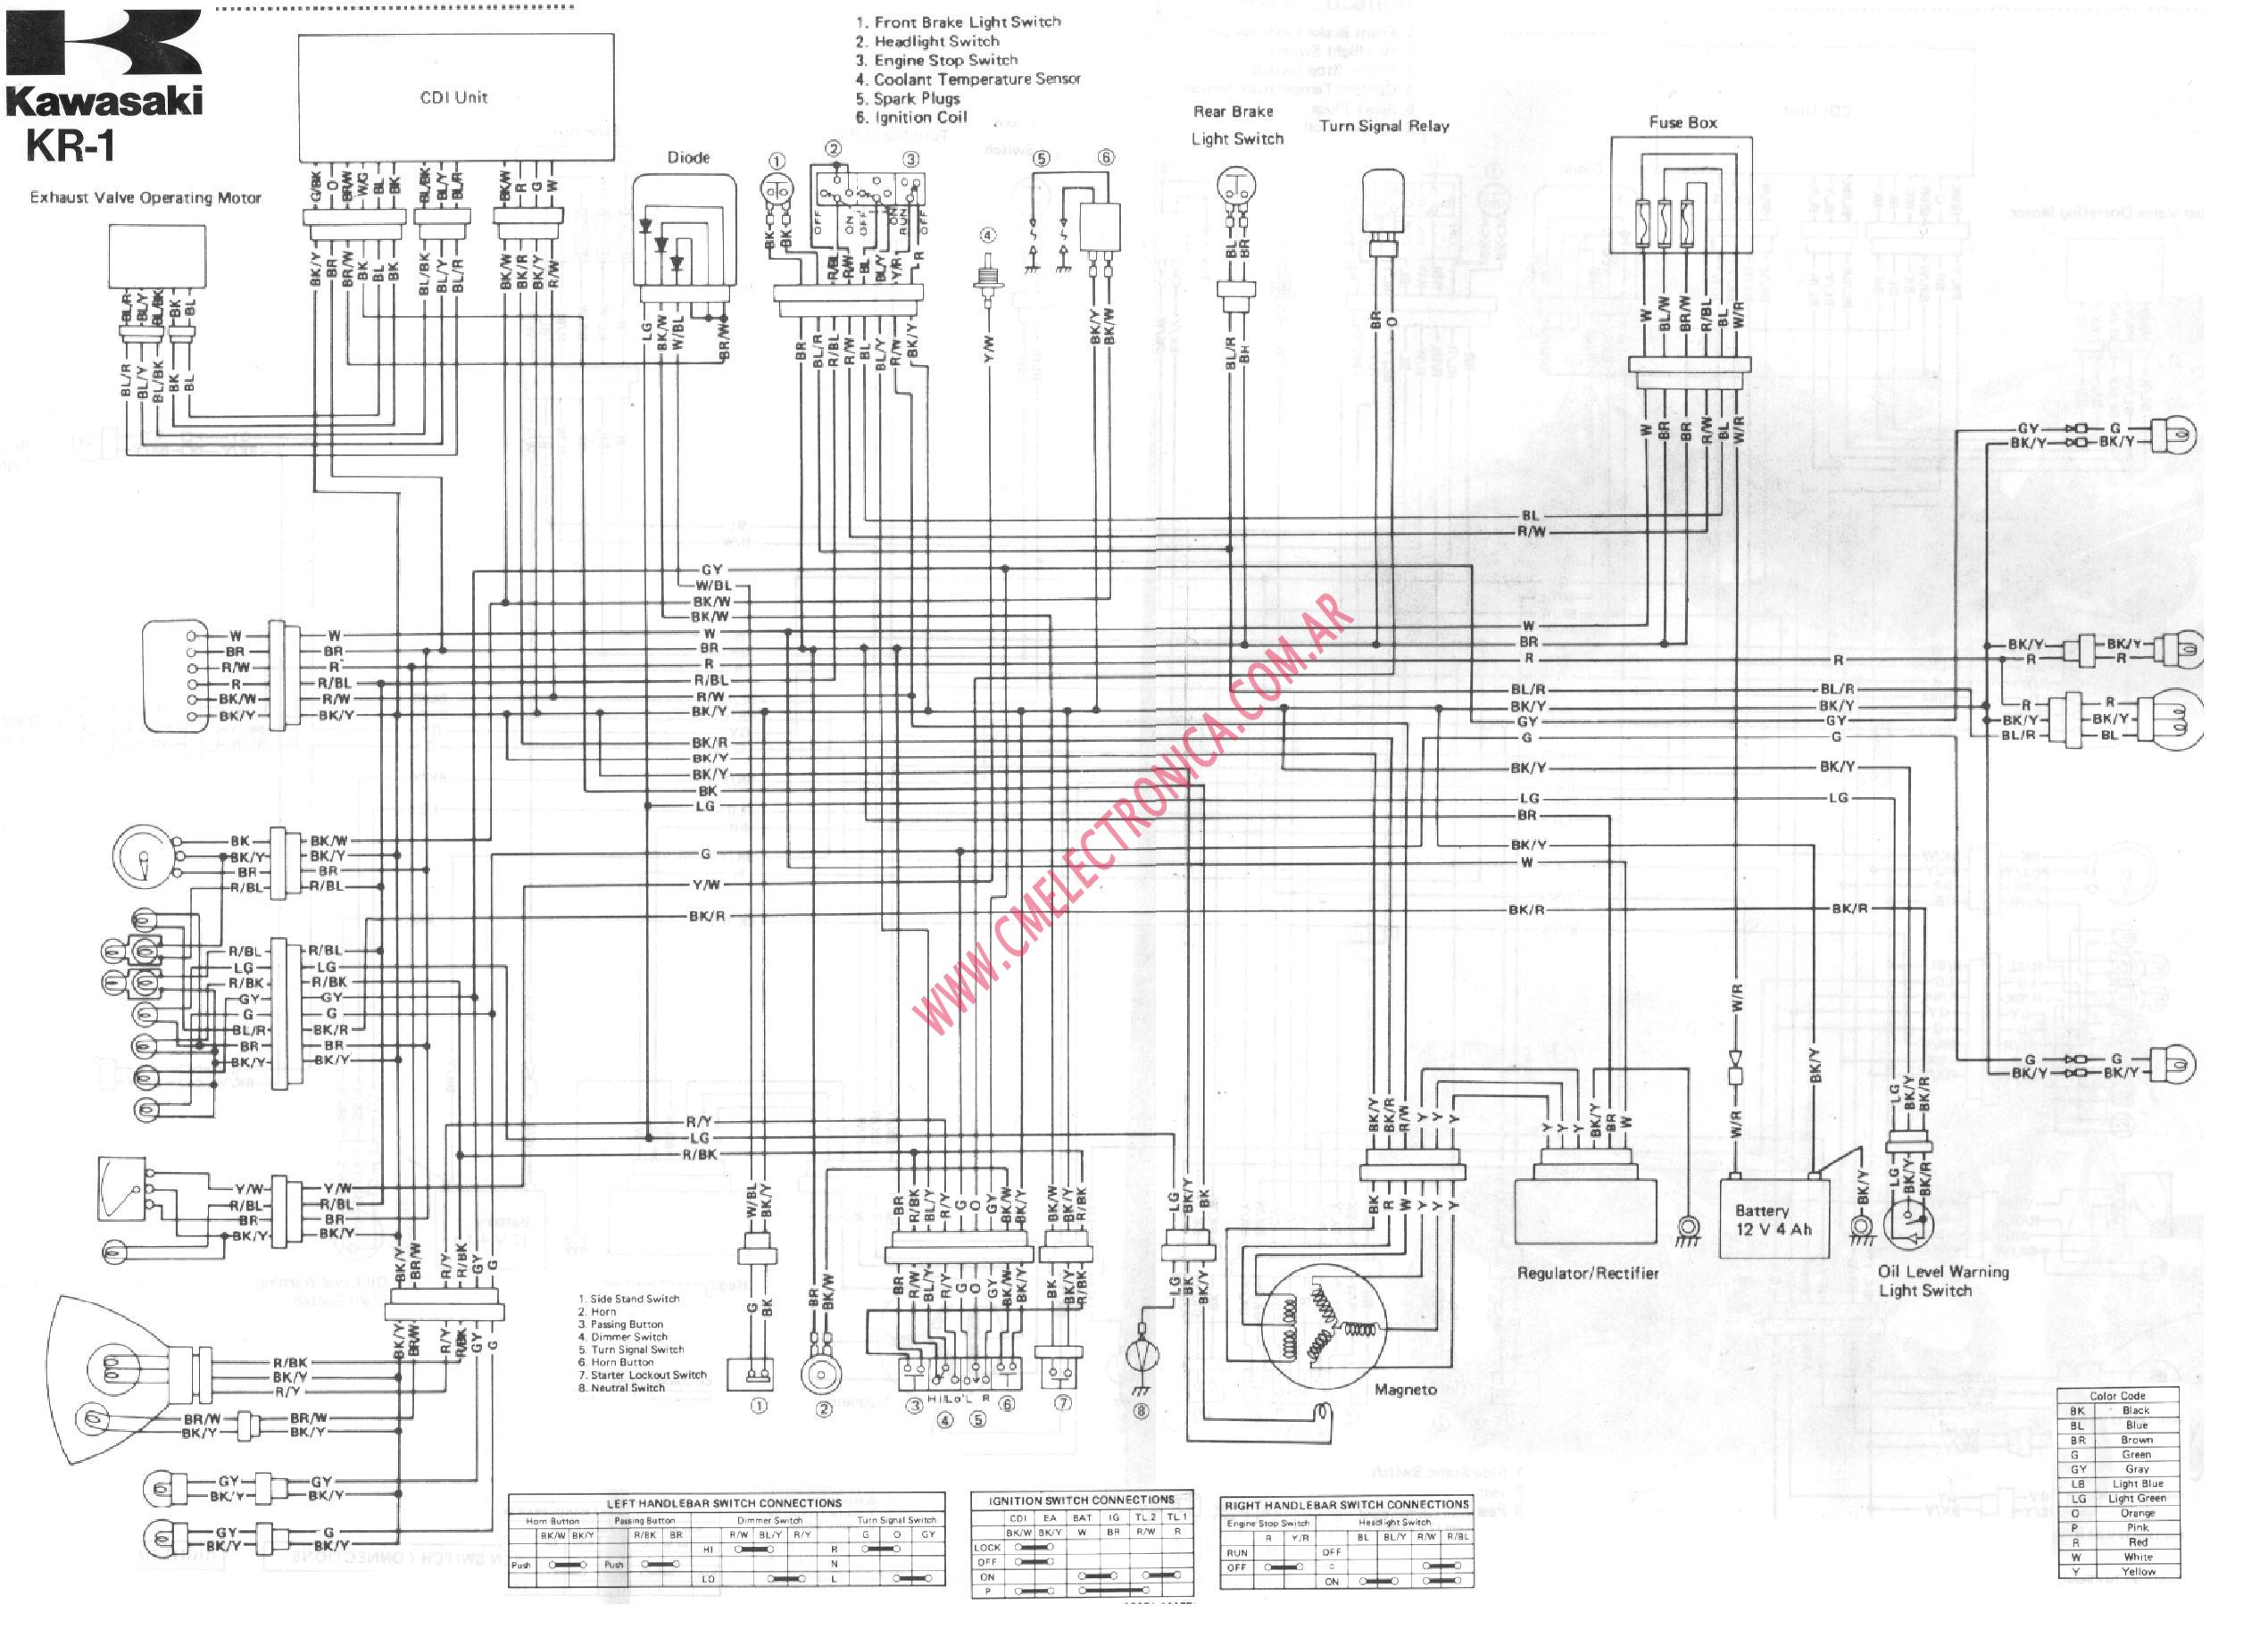 2004 expedition blower motor wiring diagram